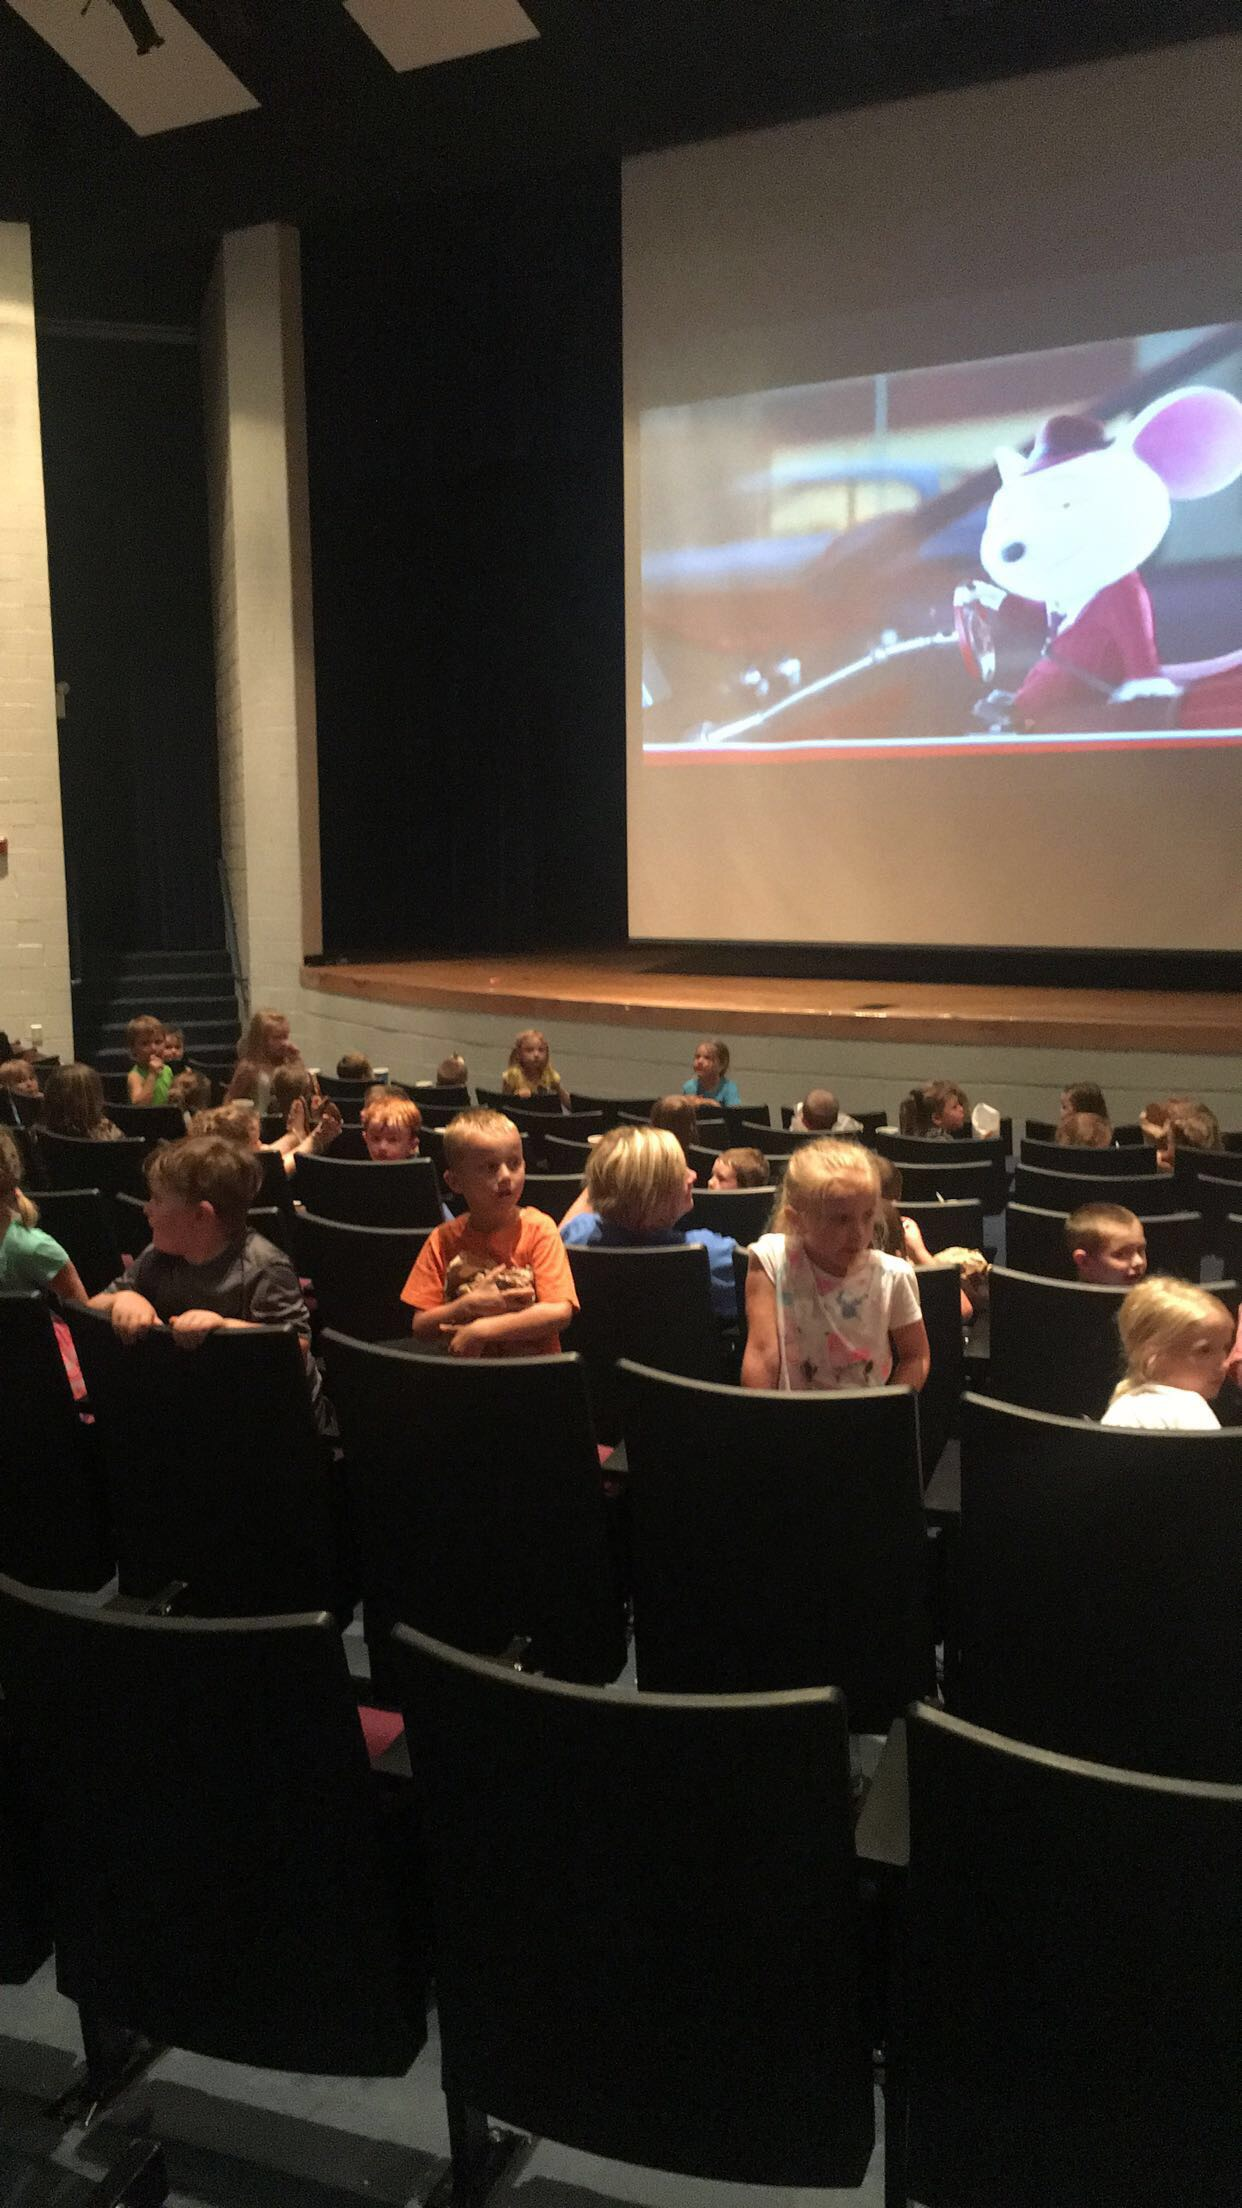 Along with schools across the state, Clinton County Schools celebrated High Attendance Day on Wednesday, September 20, 2017.